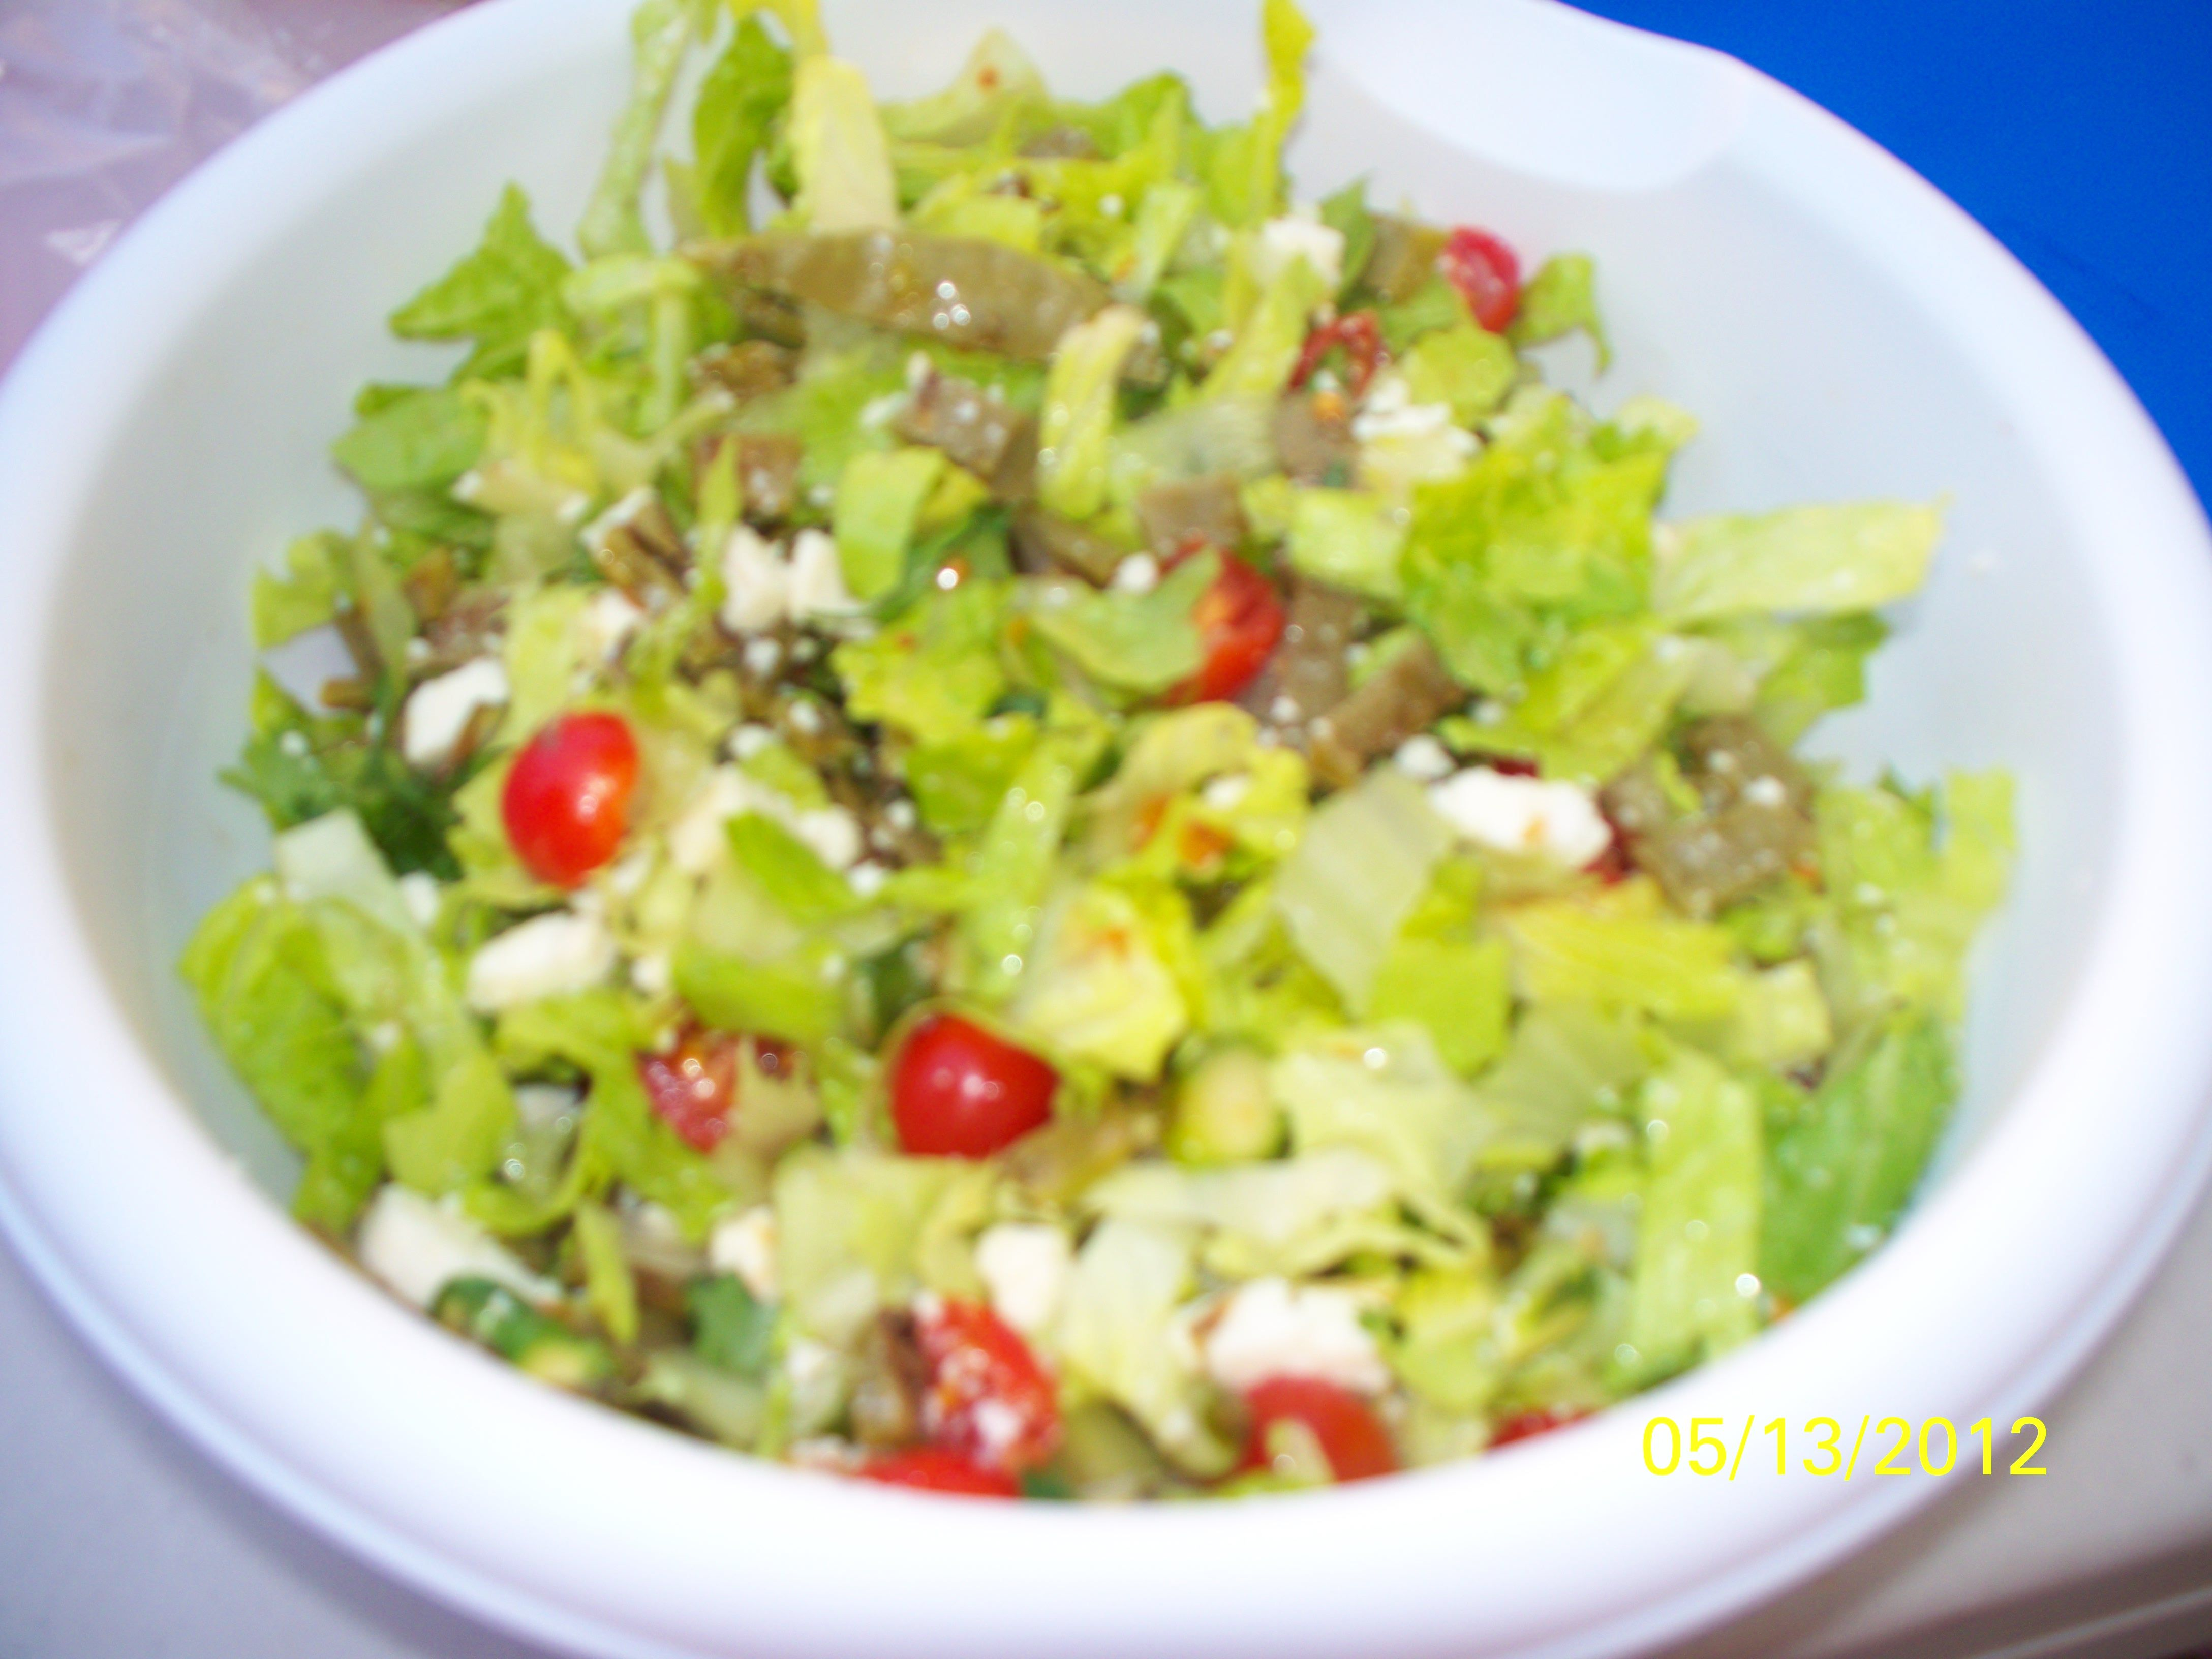 GRILLED CACTUS SALAD"